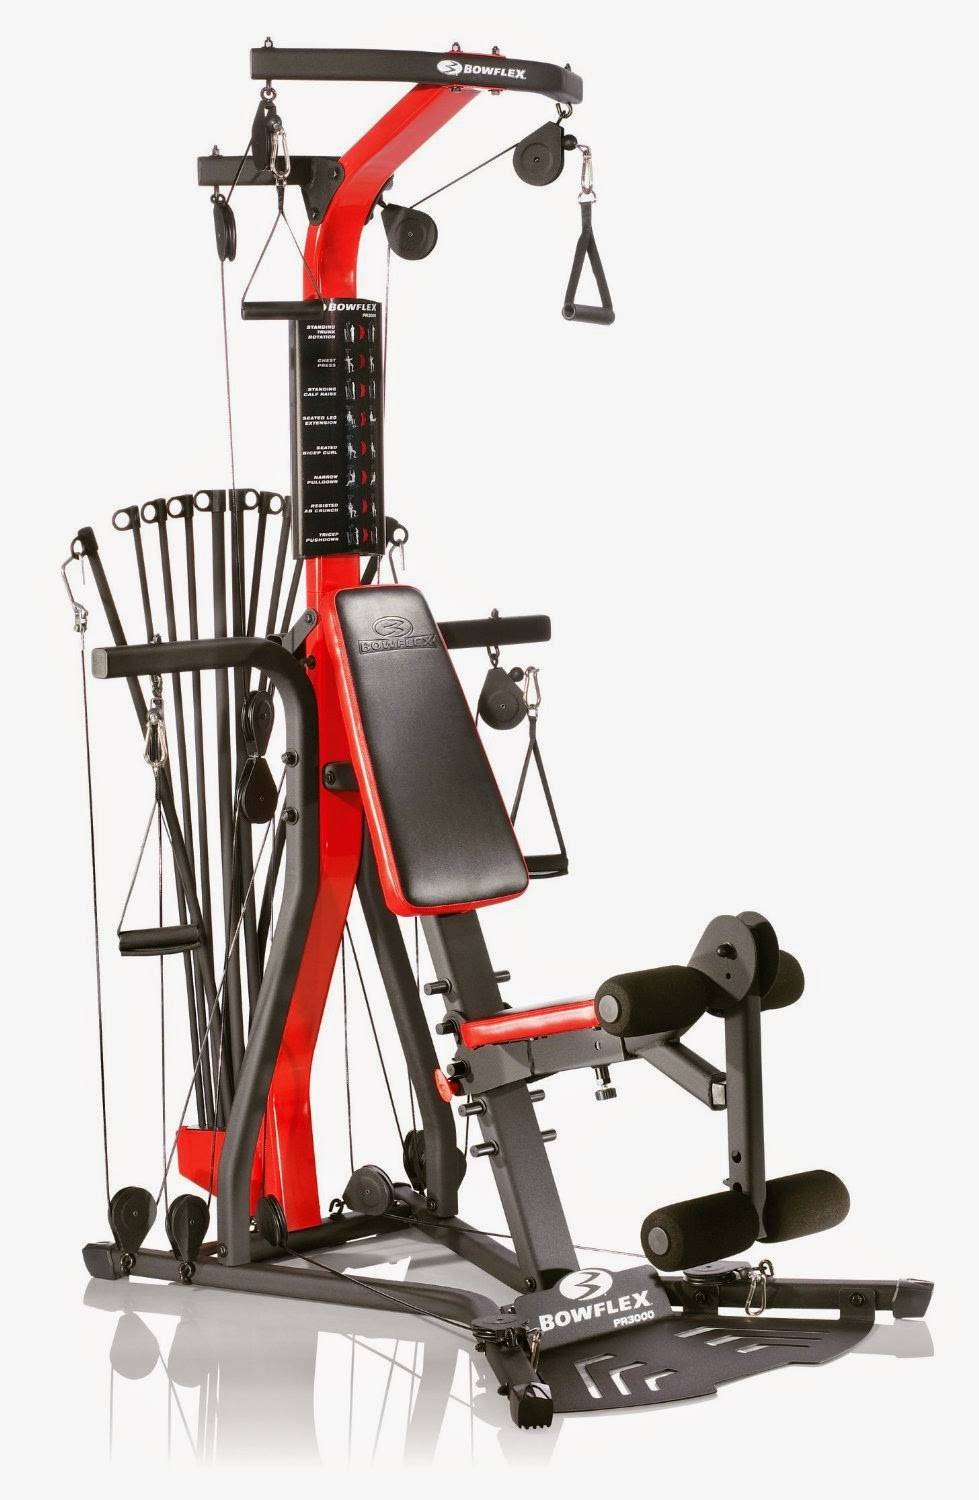 Bowflex PR3000 Home Gym, review list of strength exercises